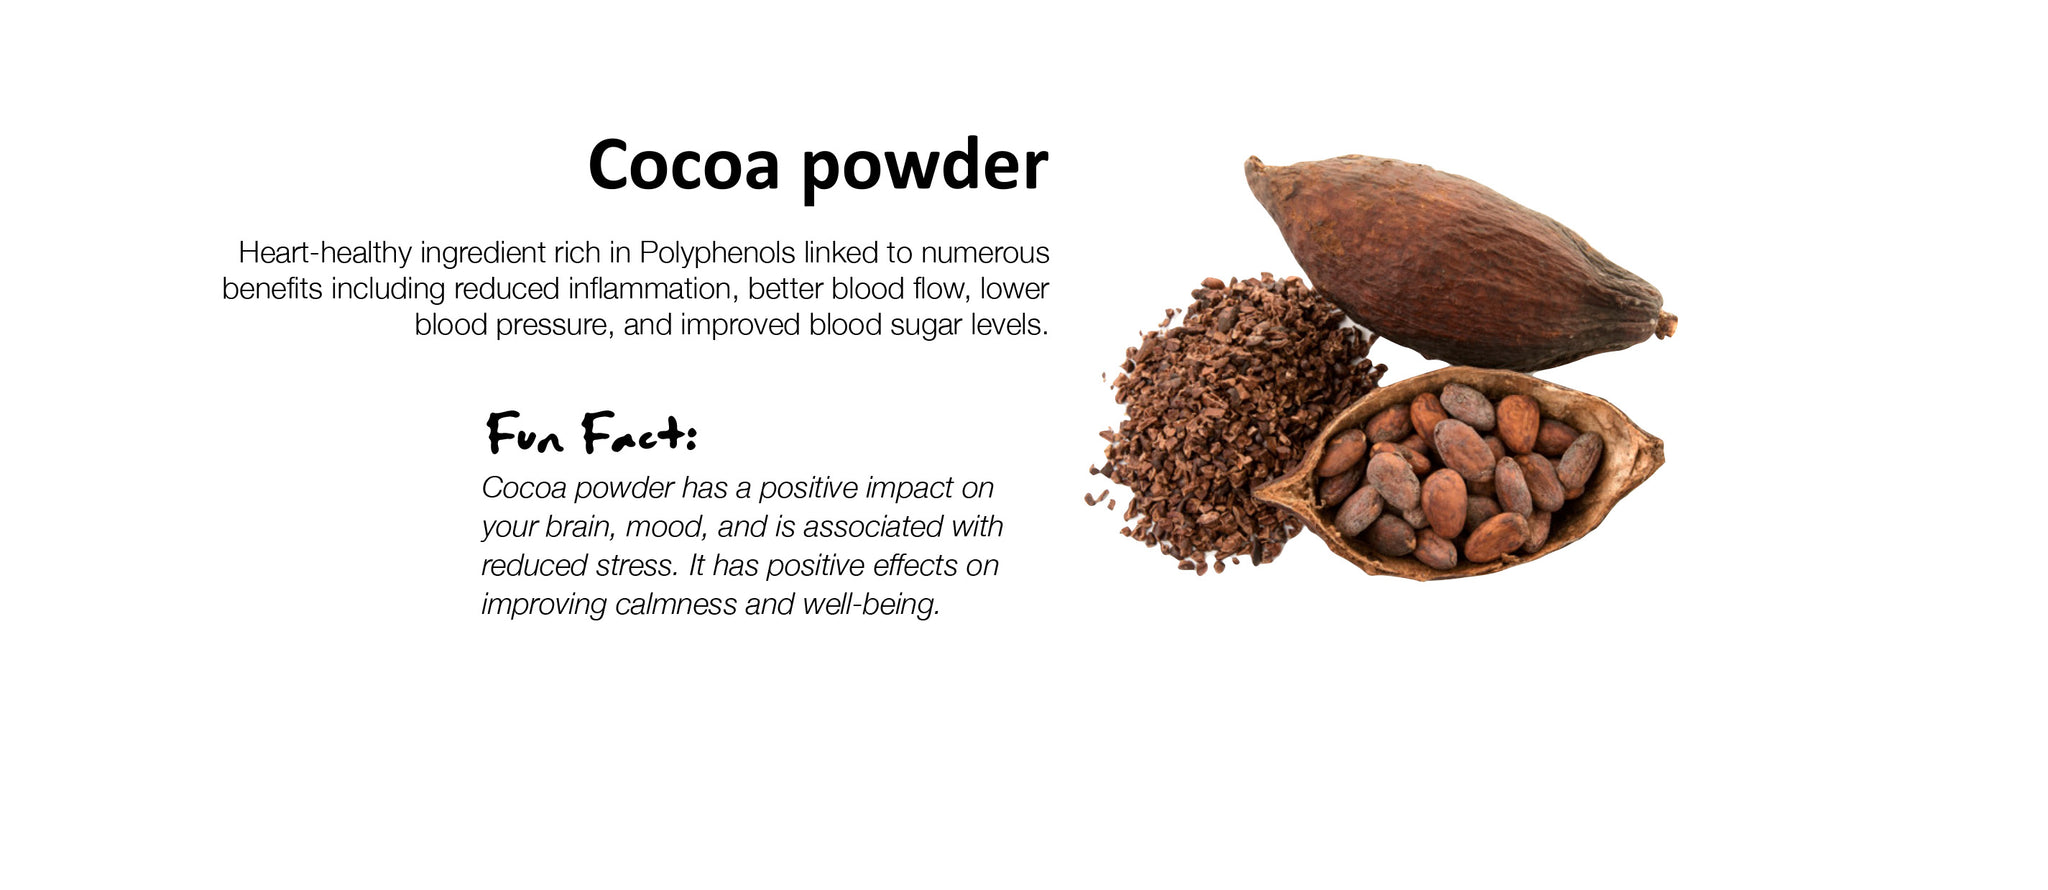 Cocoa powder Heart-healthy ingredient rich in Polyphenols linked to numerous benefits including reduced inflammation, better blood flow, lower blood pressure, and improved blood sugar levels.